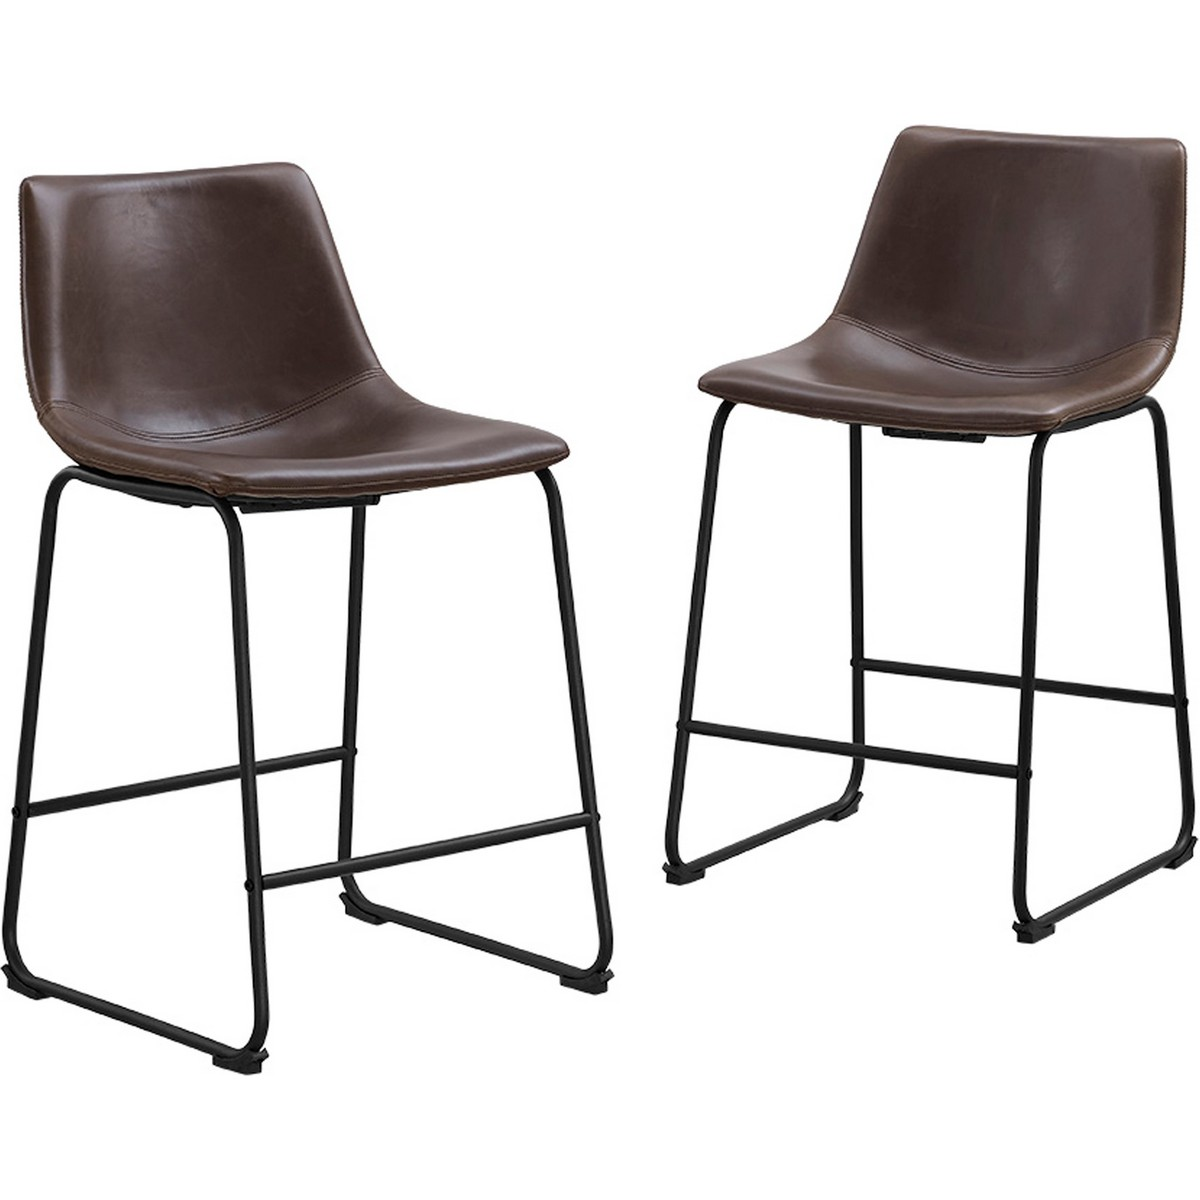 Walker Edison Brown Leatherette Counter Stools on Powder Coated Steel Legs(Set of 2)  sc 1 st  Dynamic Home Decor & Walker Edison CHL26BR Brown Leatherette Counter Stools on Powder ... islam-shia.org